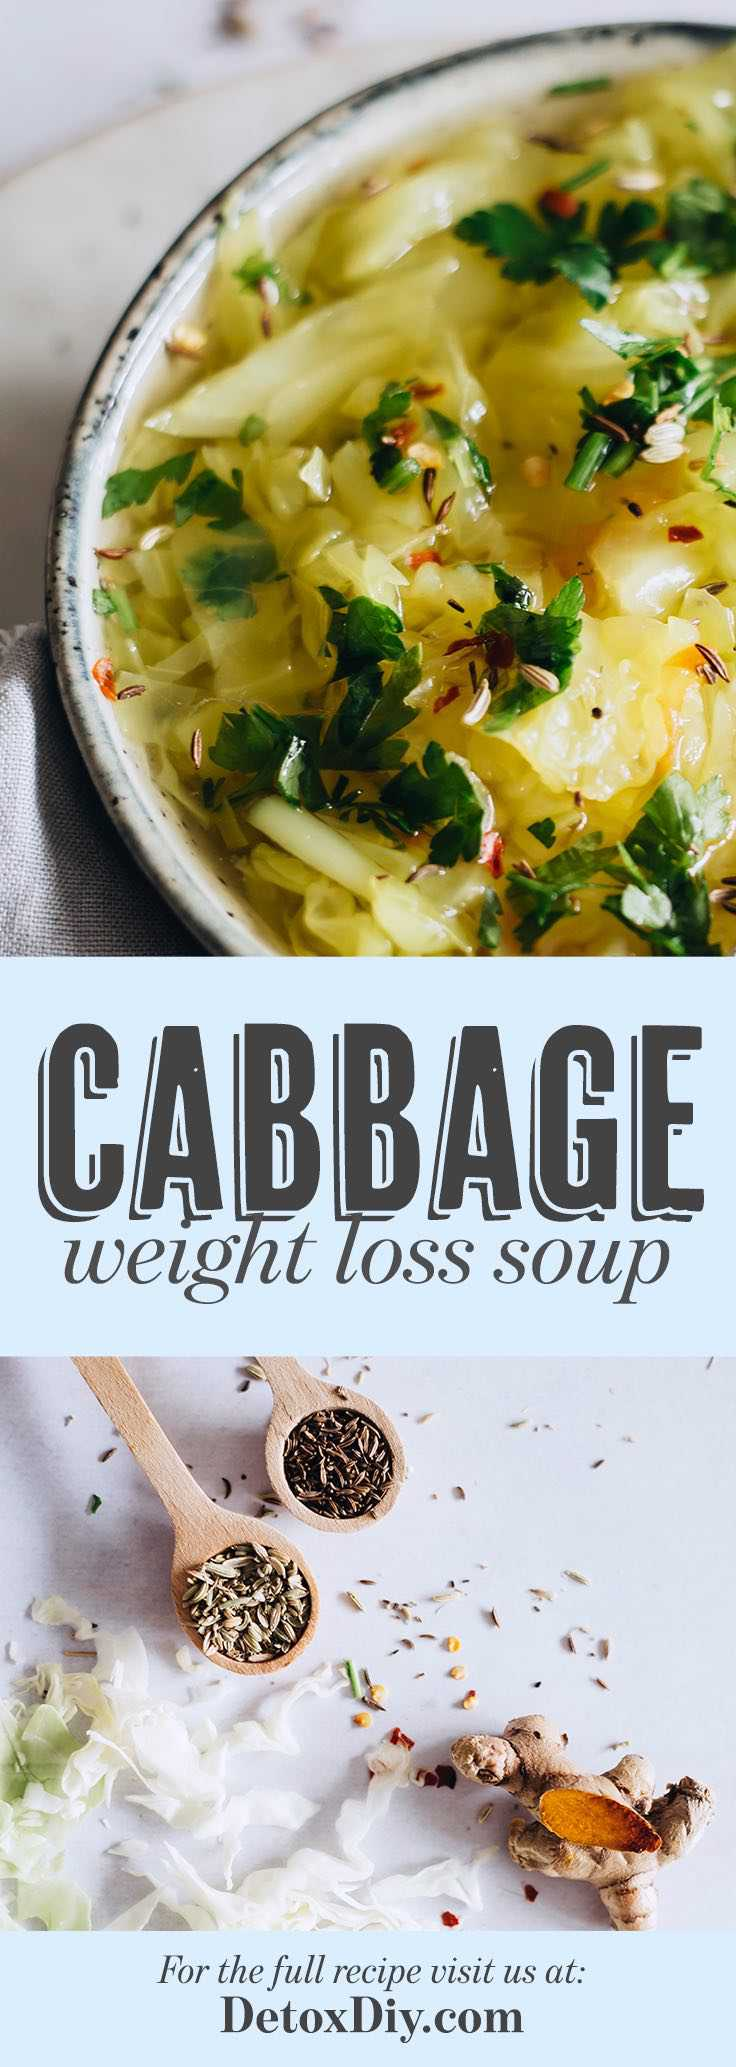 This cabbage weight loss soup really works!